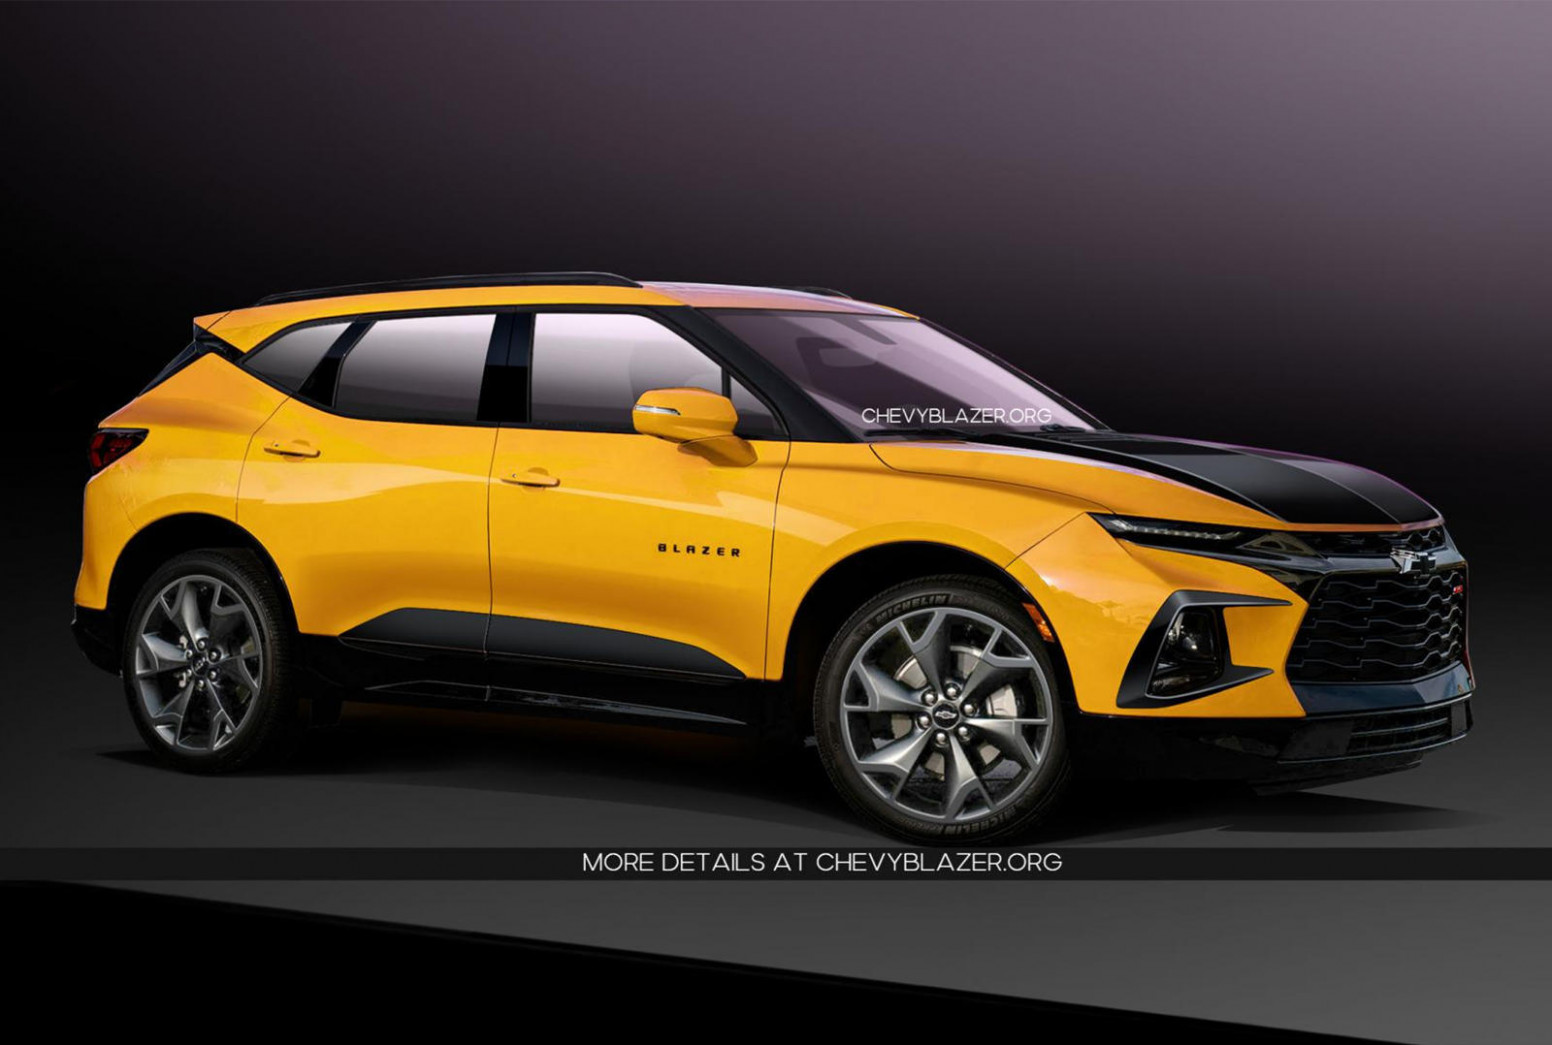 Wallpaper Chevrolet Blazer 2022